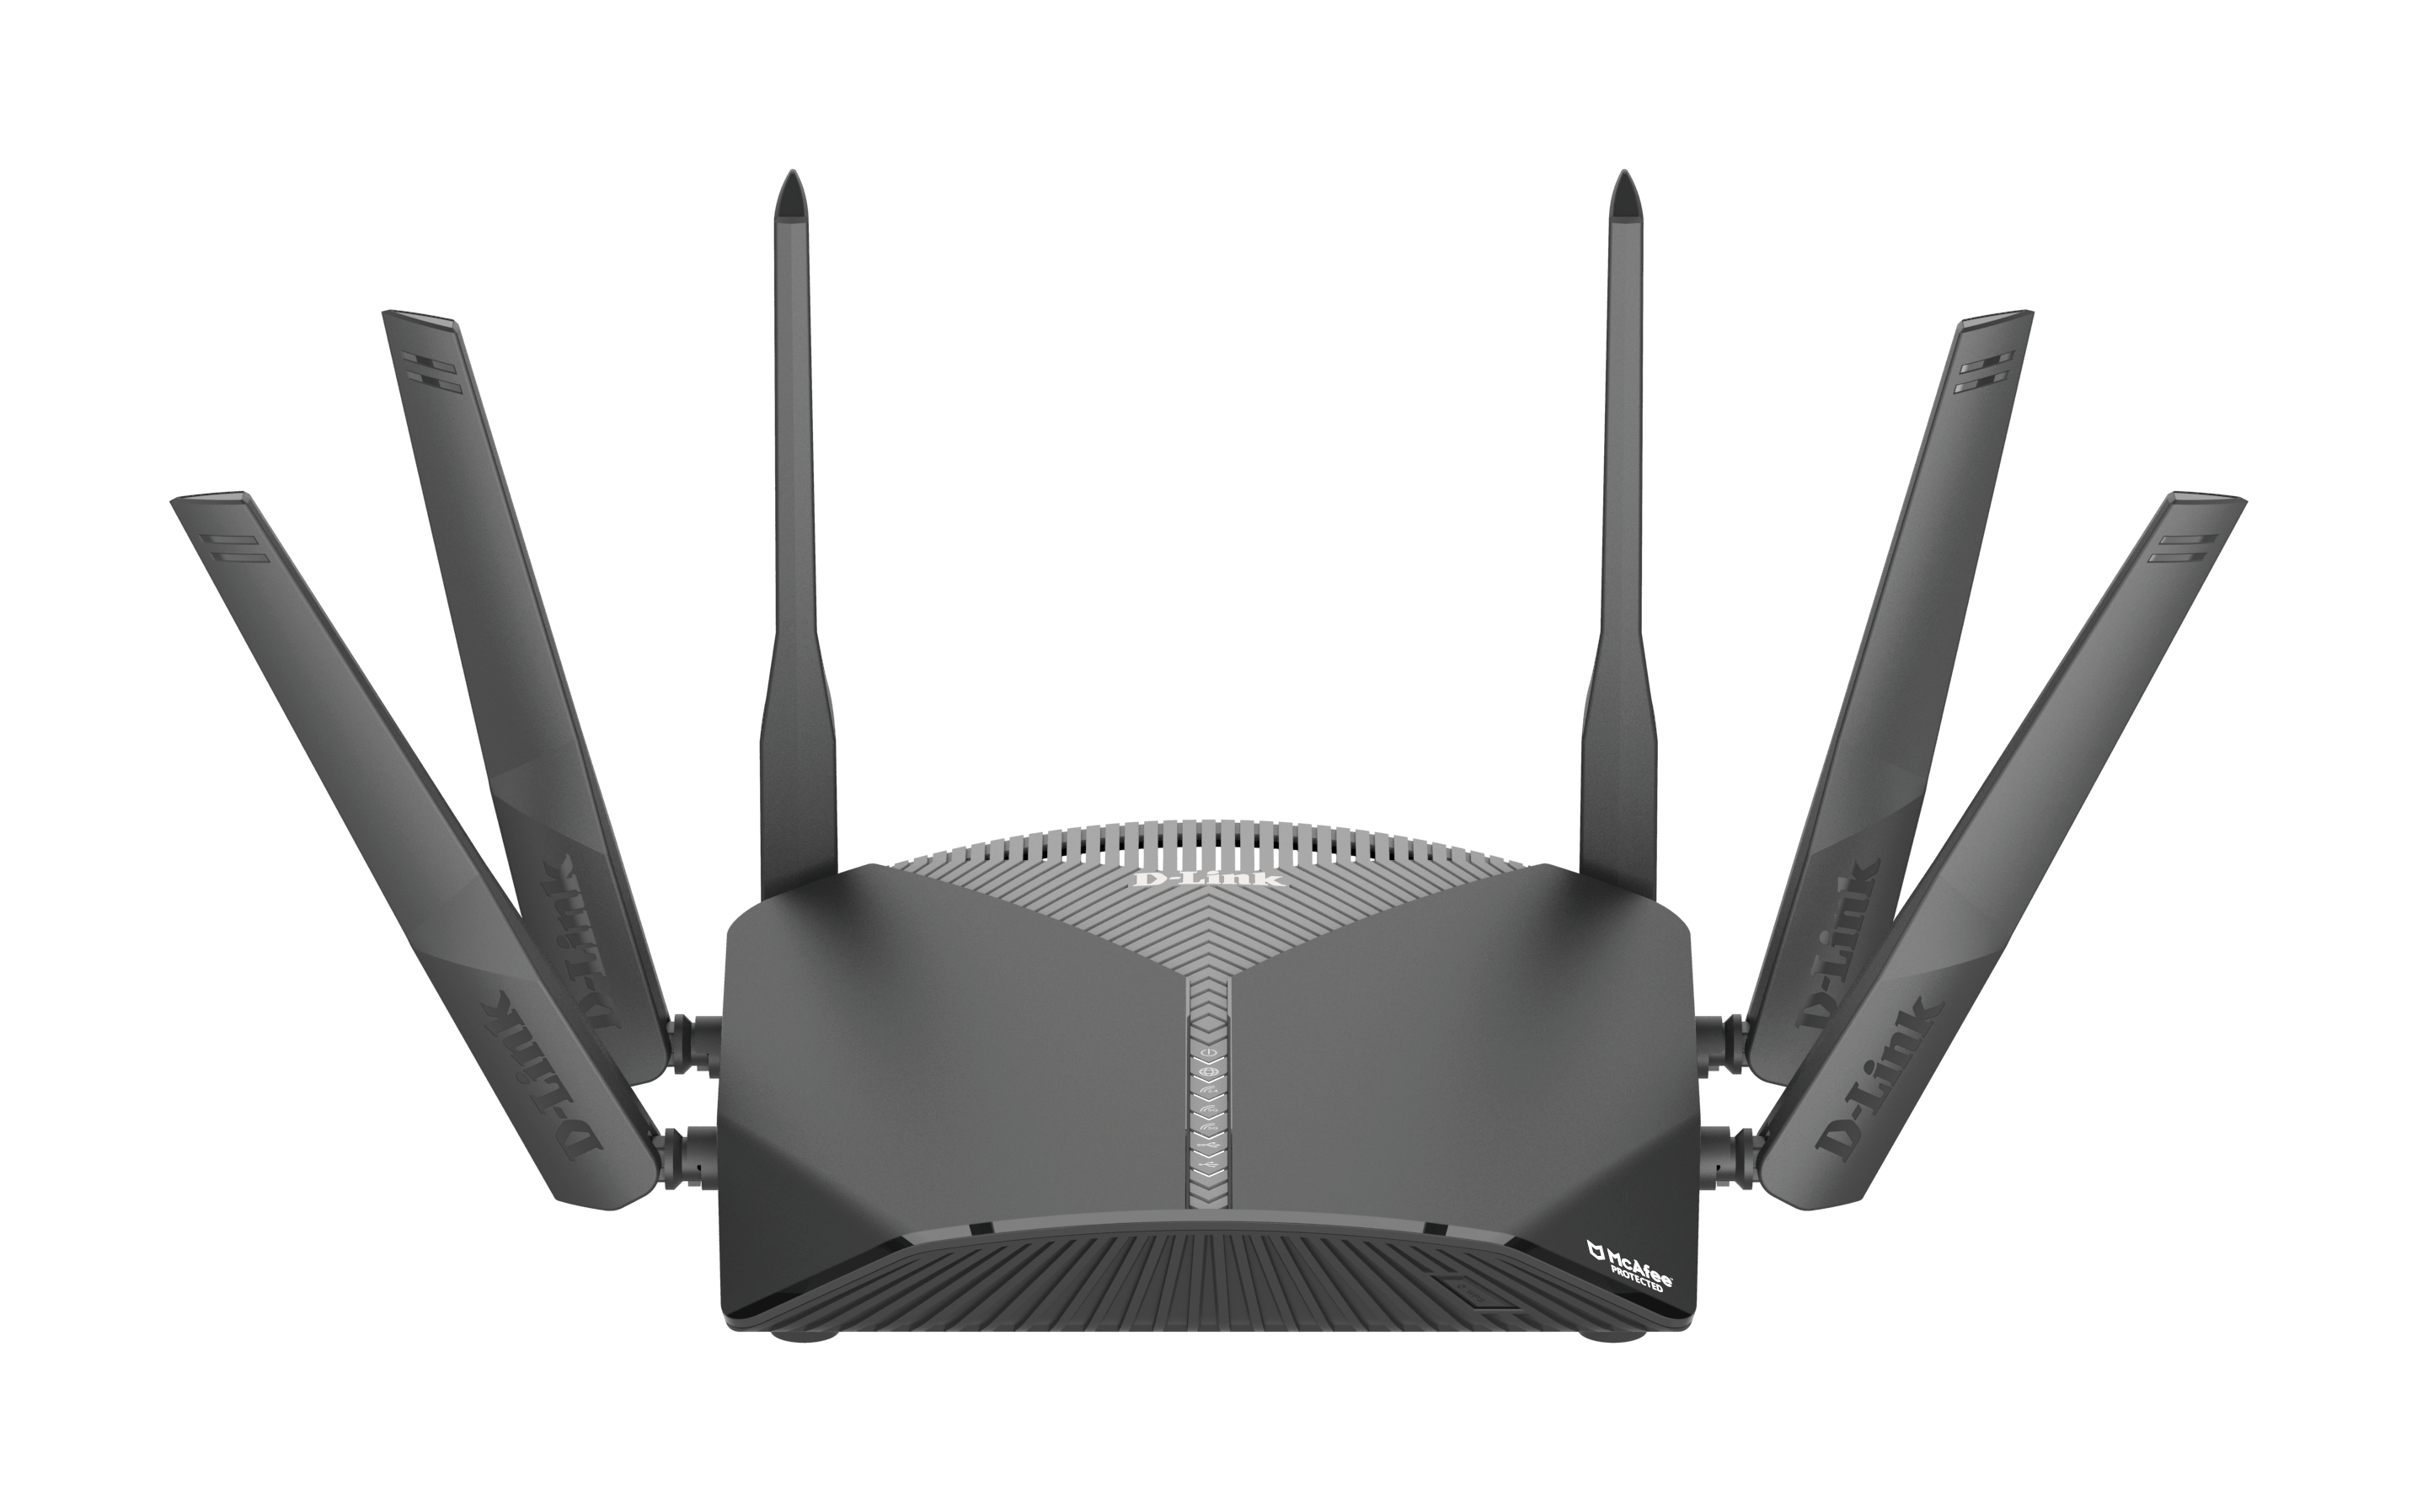 D-Link's EXO AC3000 router.